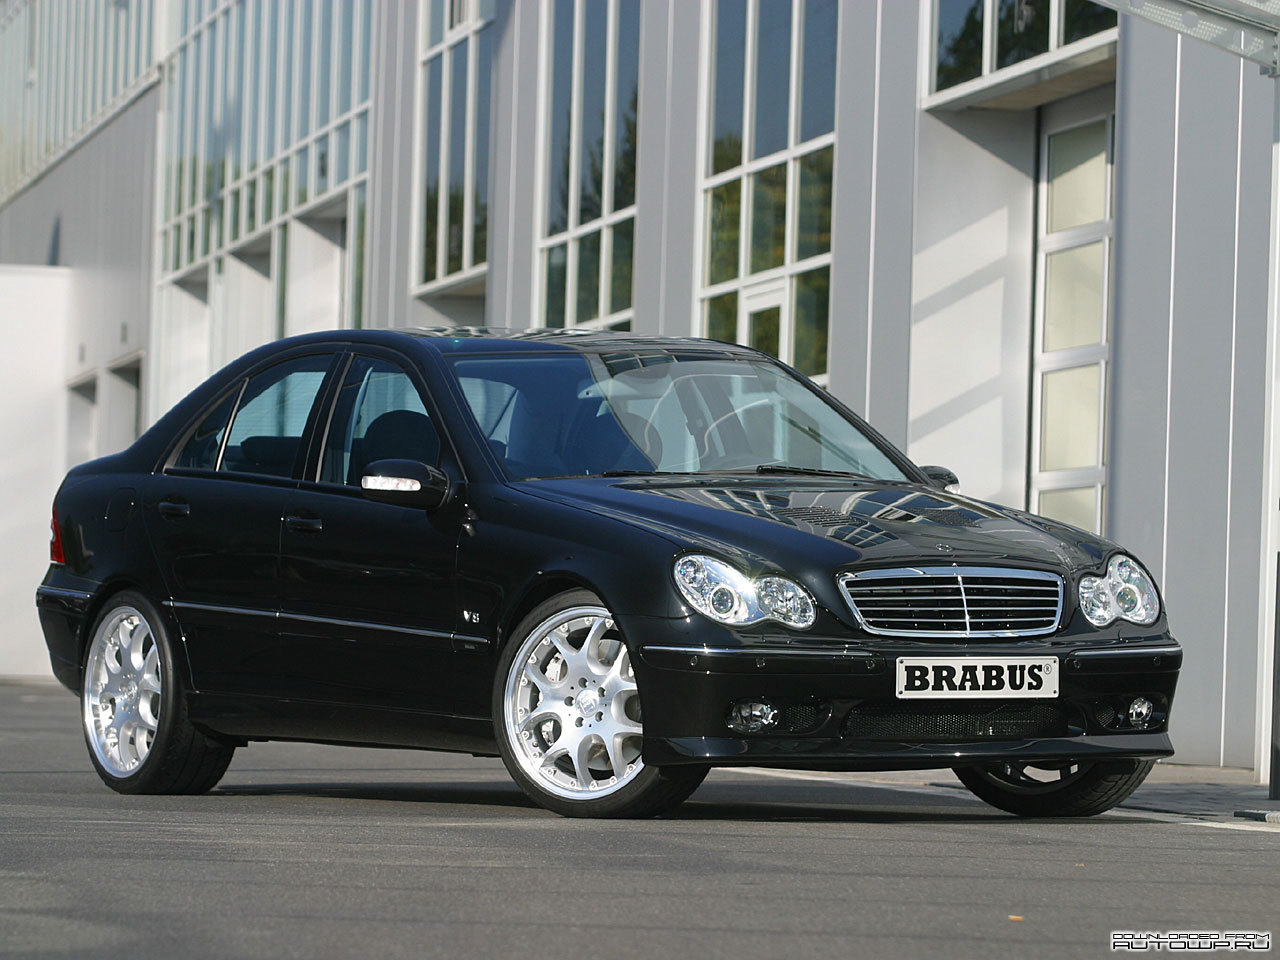 brabus c class w203 photos photogallery with 9 pics. Black Bedroom Furniture Sets. Home Design Ideas